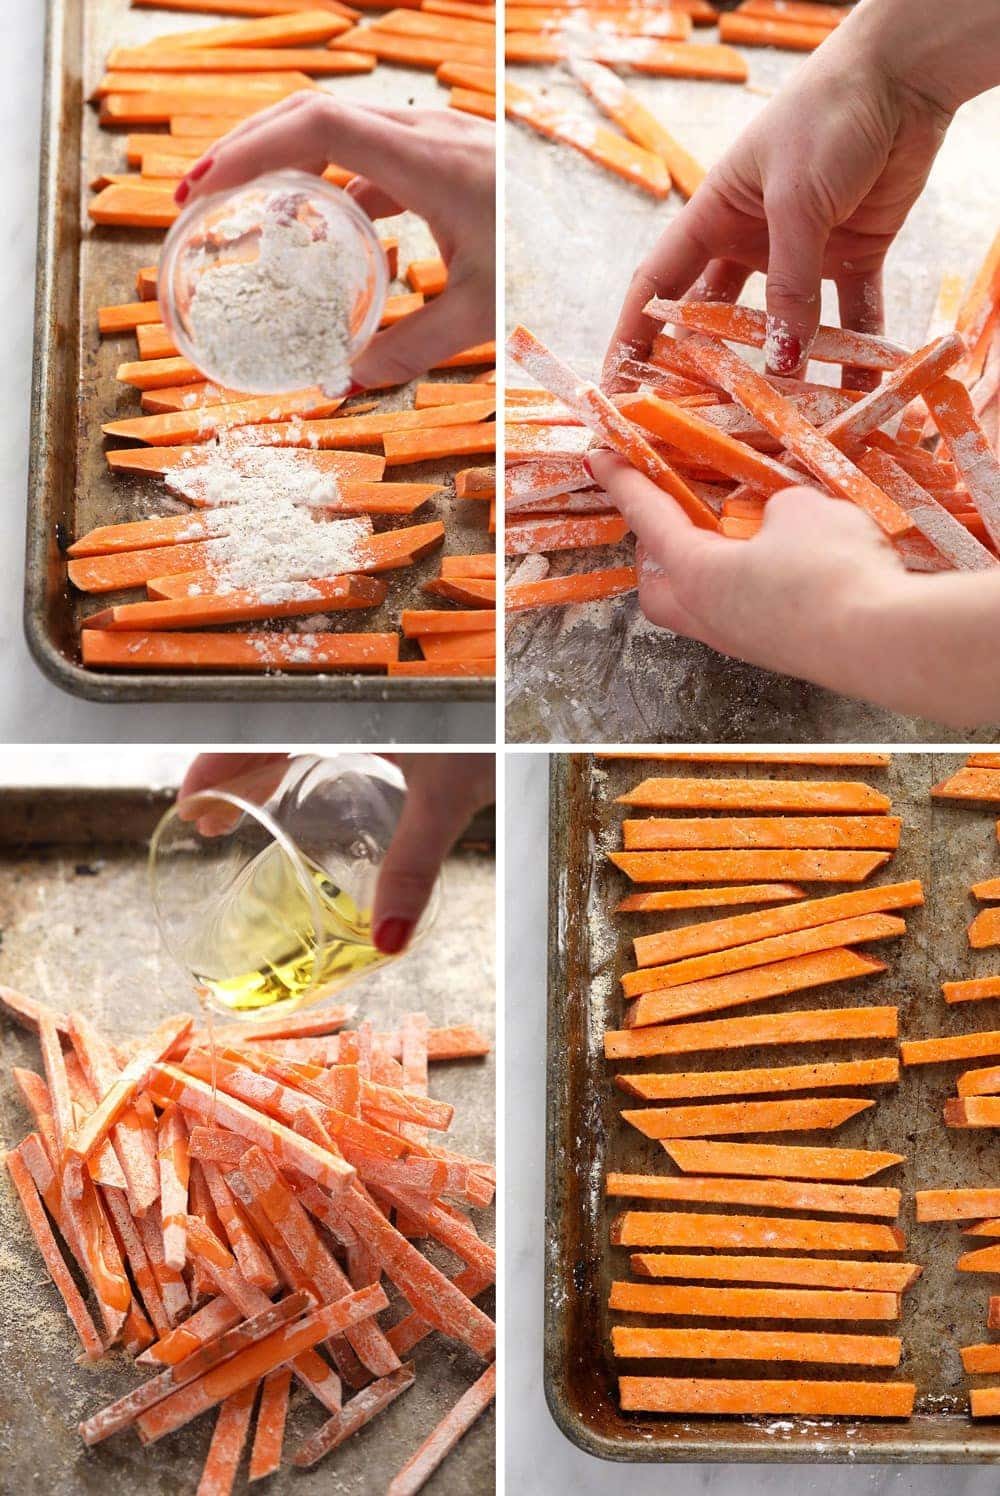 The process of making sweet potato fries